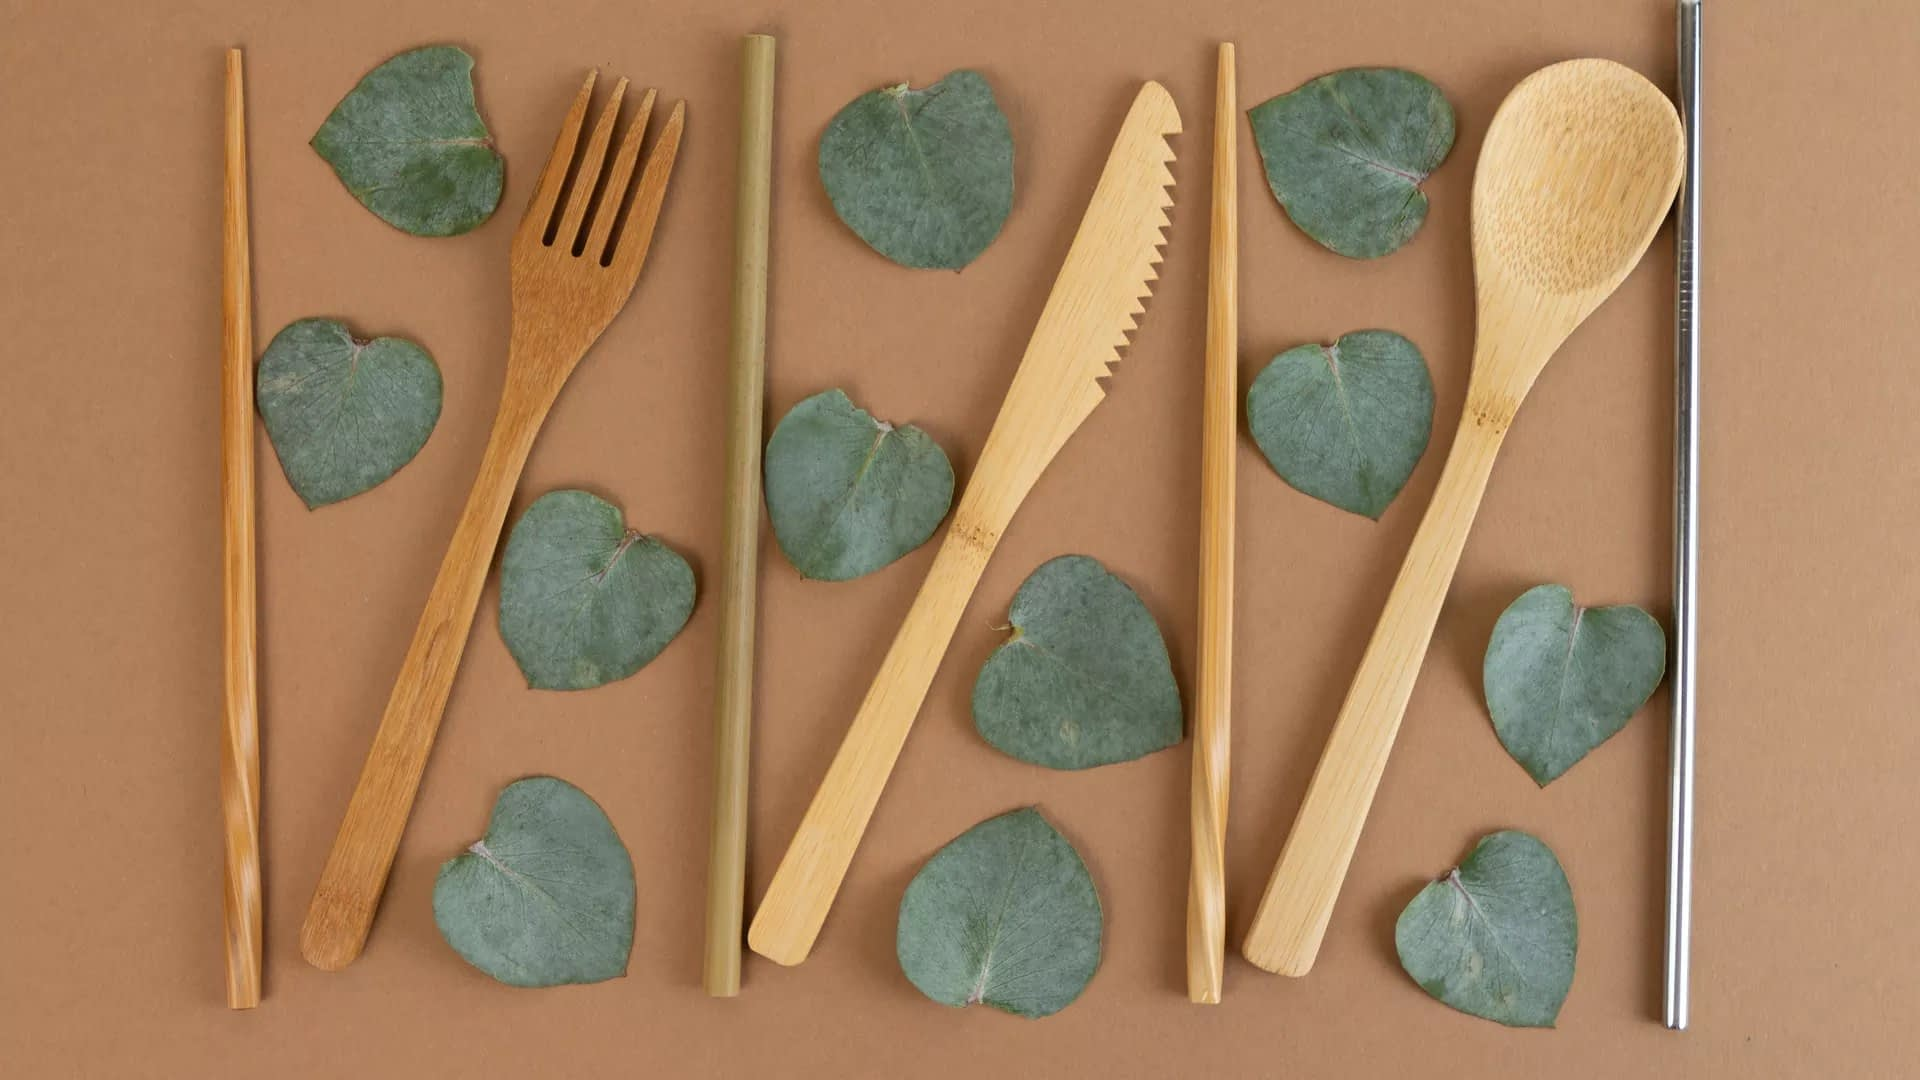 BAMBOO CUTLERY : A PERFECT ECO-FRIENDLY VALENTINE'S DAY GIFT TO YOUR SPOUSE